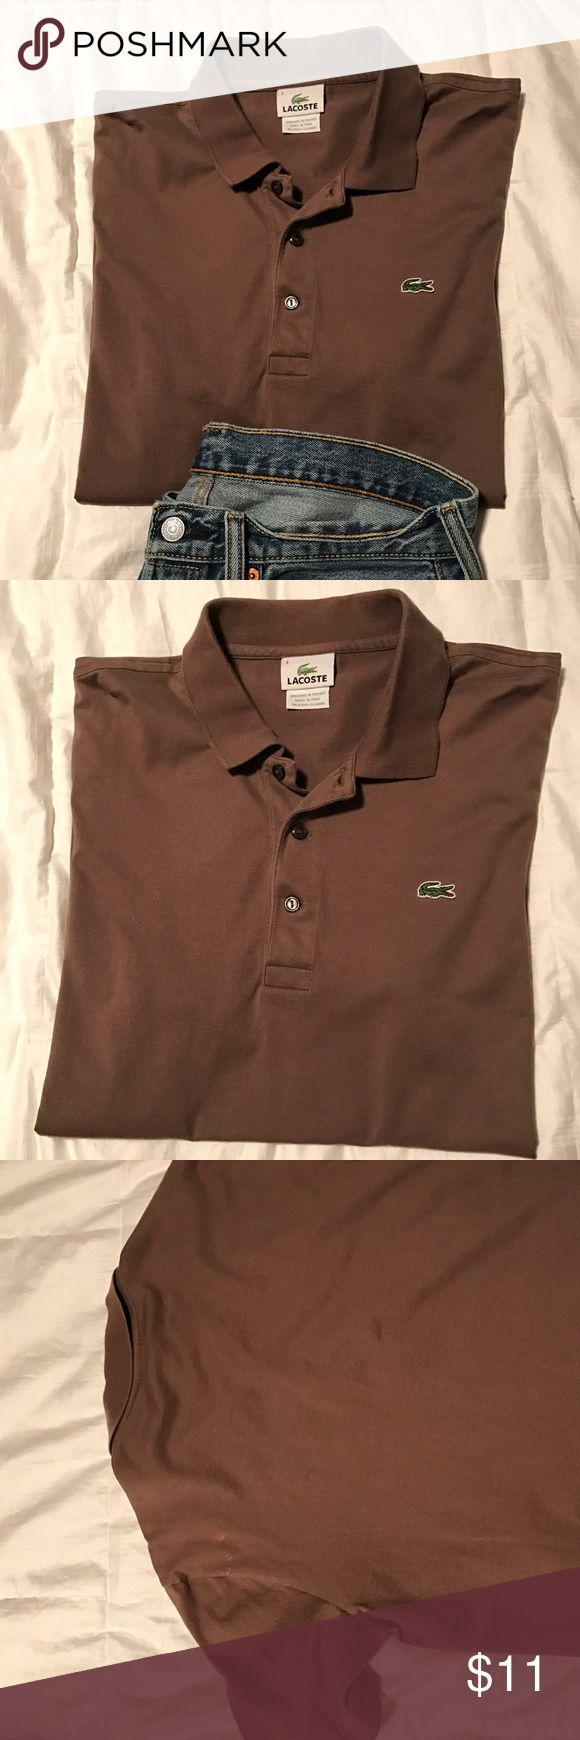 Lacoste Polo Shirt Very gently used (worn once or twice). This is a size medium Lacoste polo shirt that looks great casually or dressed up. Slight discoloration on back of left shoulder. Lacoste Shirts Polos